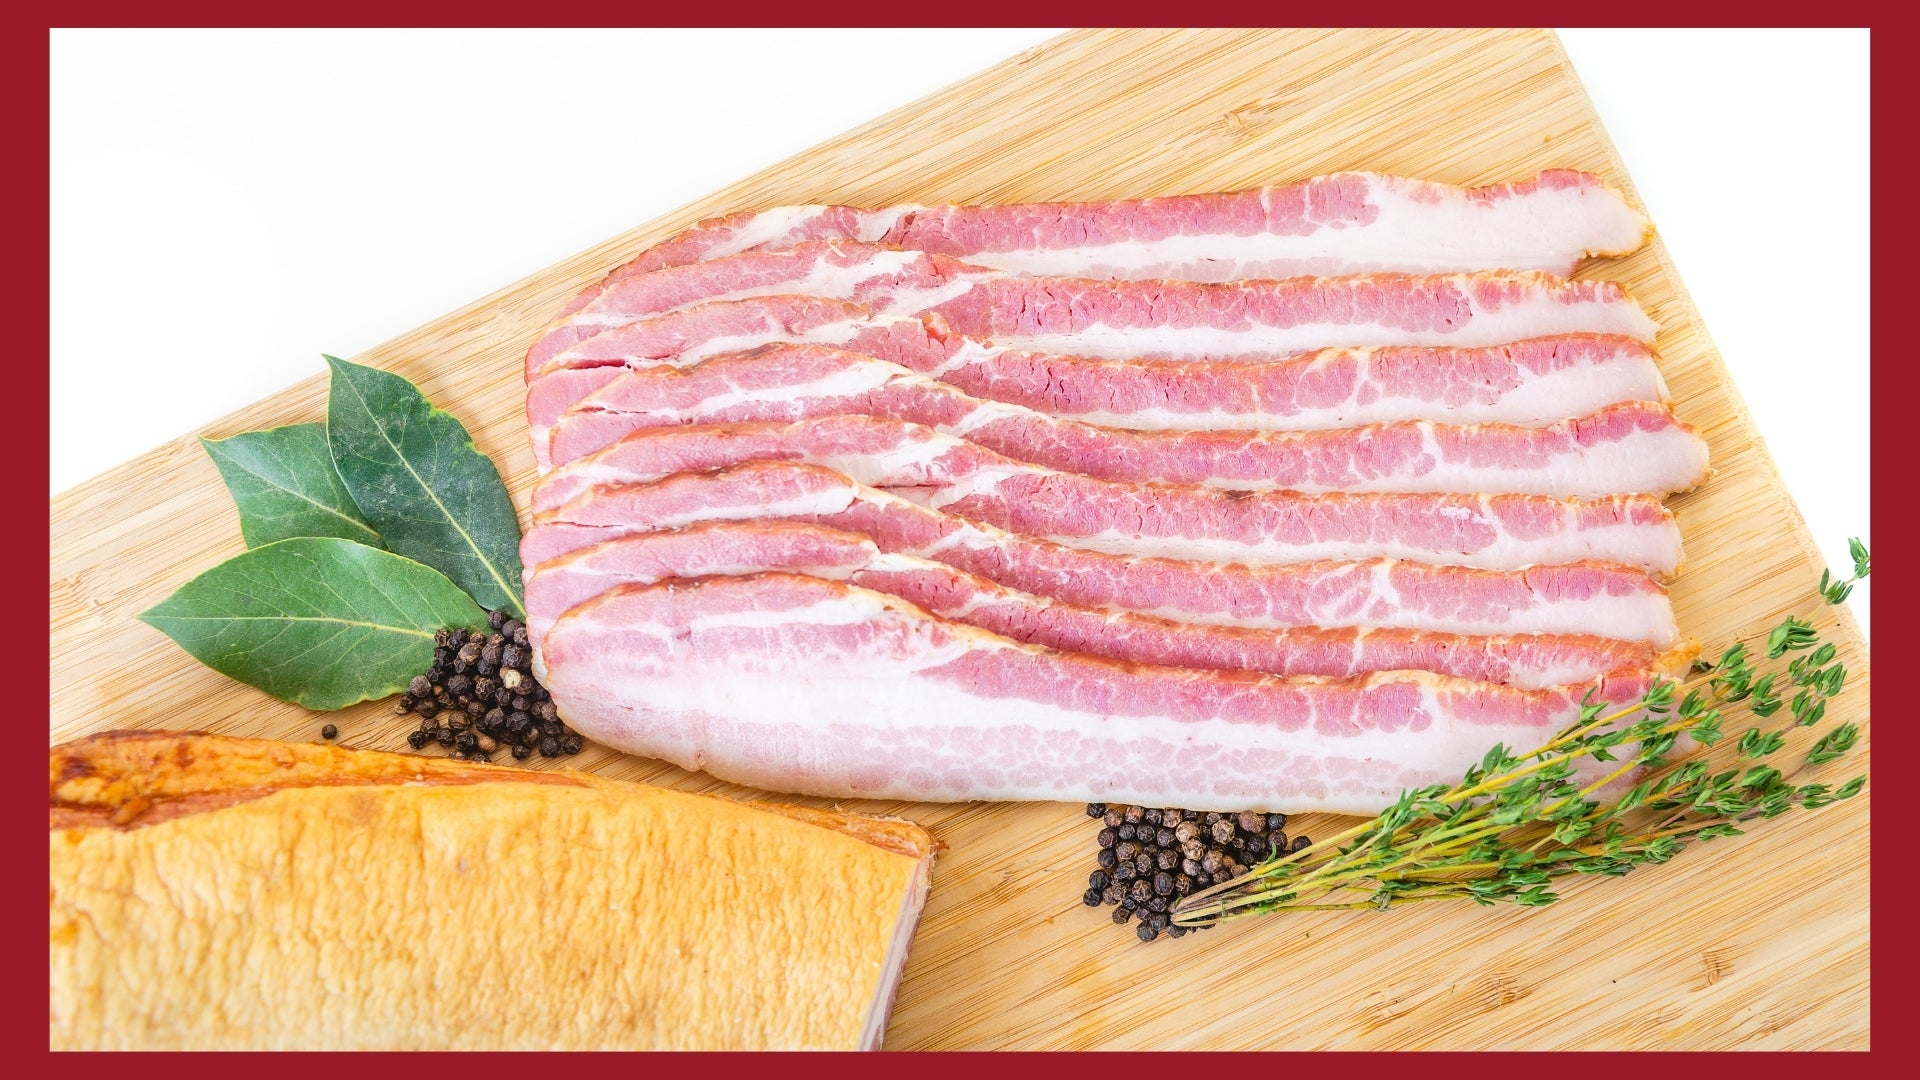 Eight bacon strips on a cutting board with peppercorns and herbs around them.